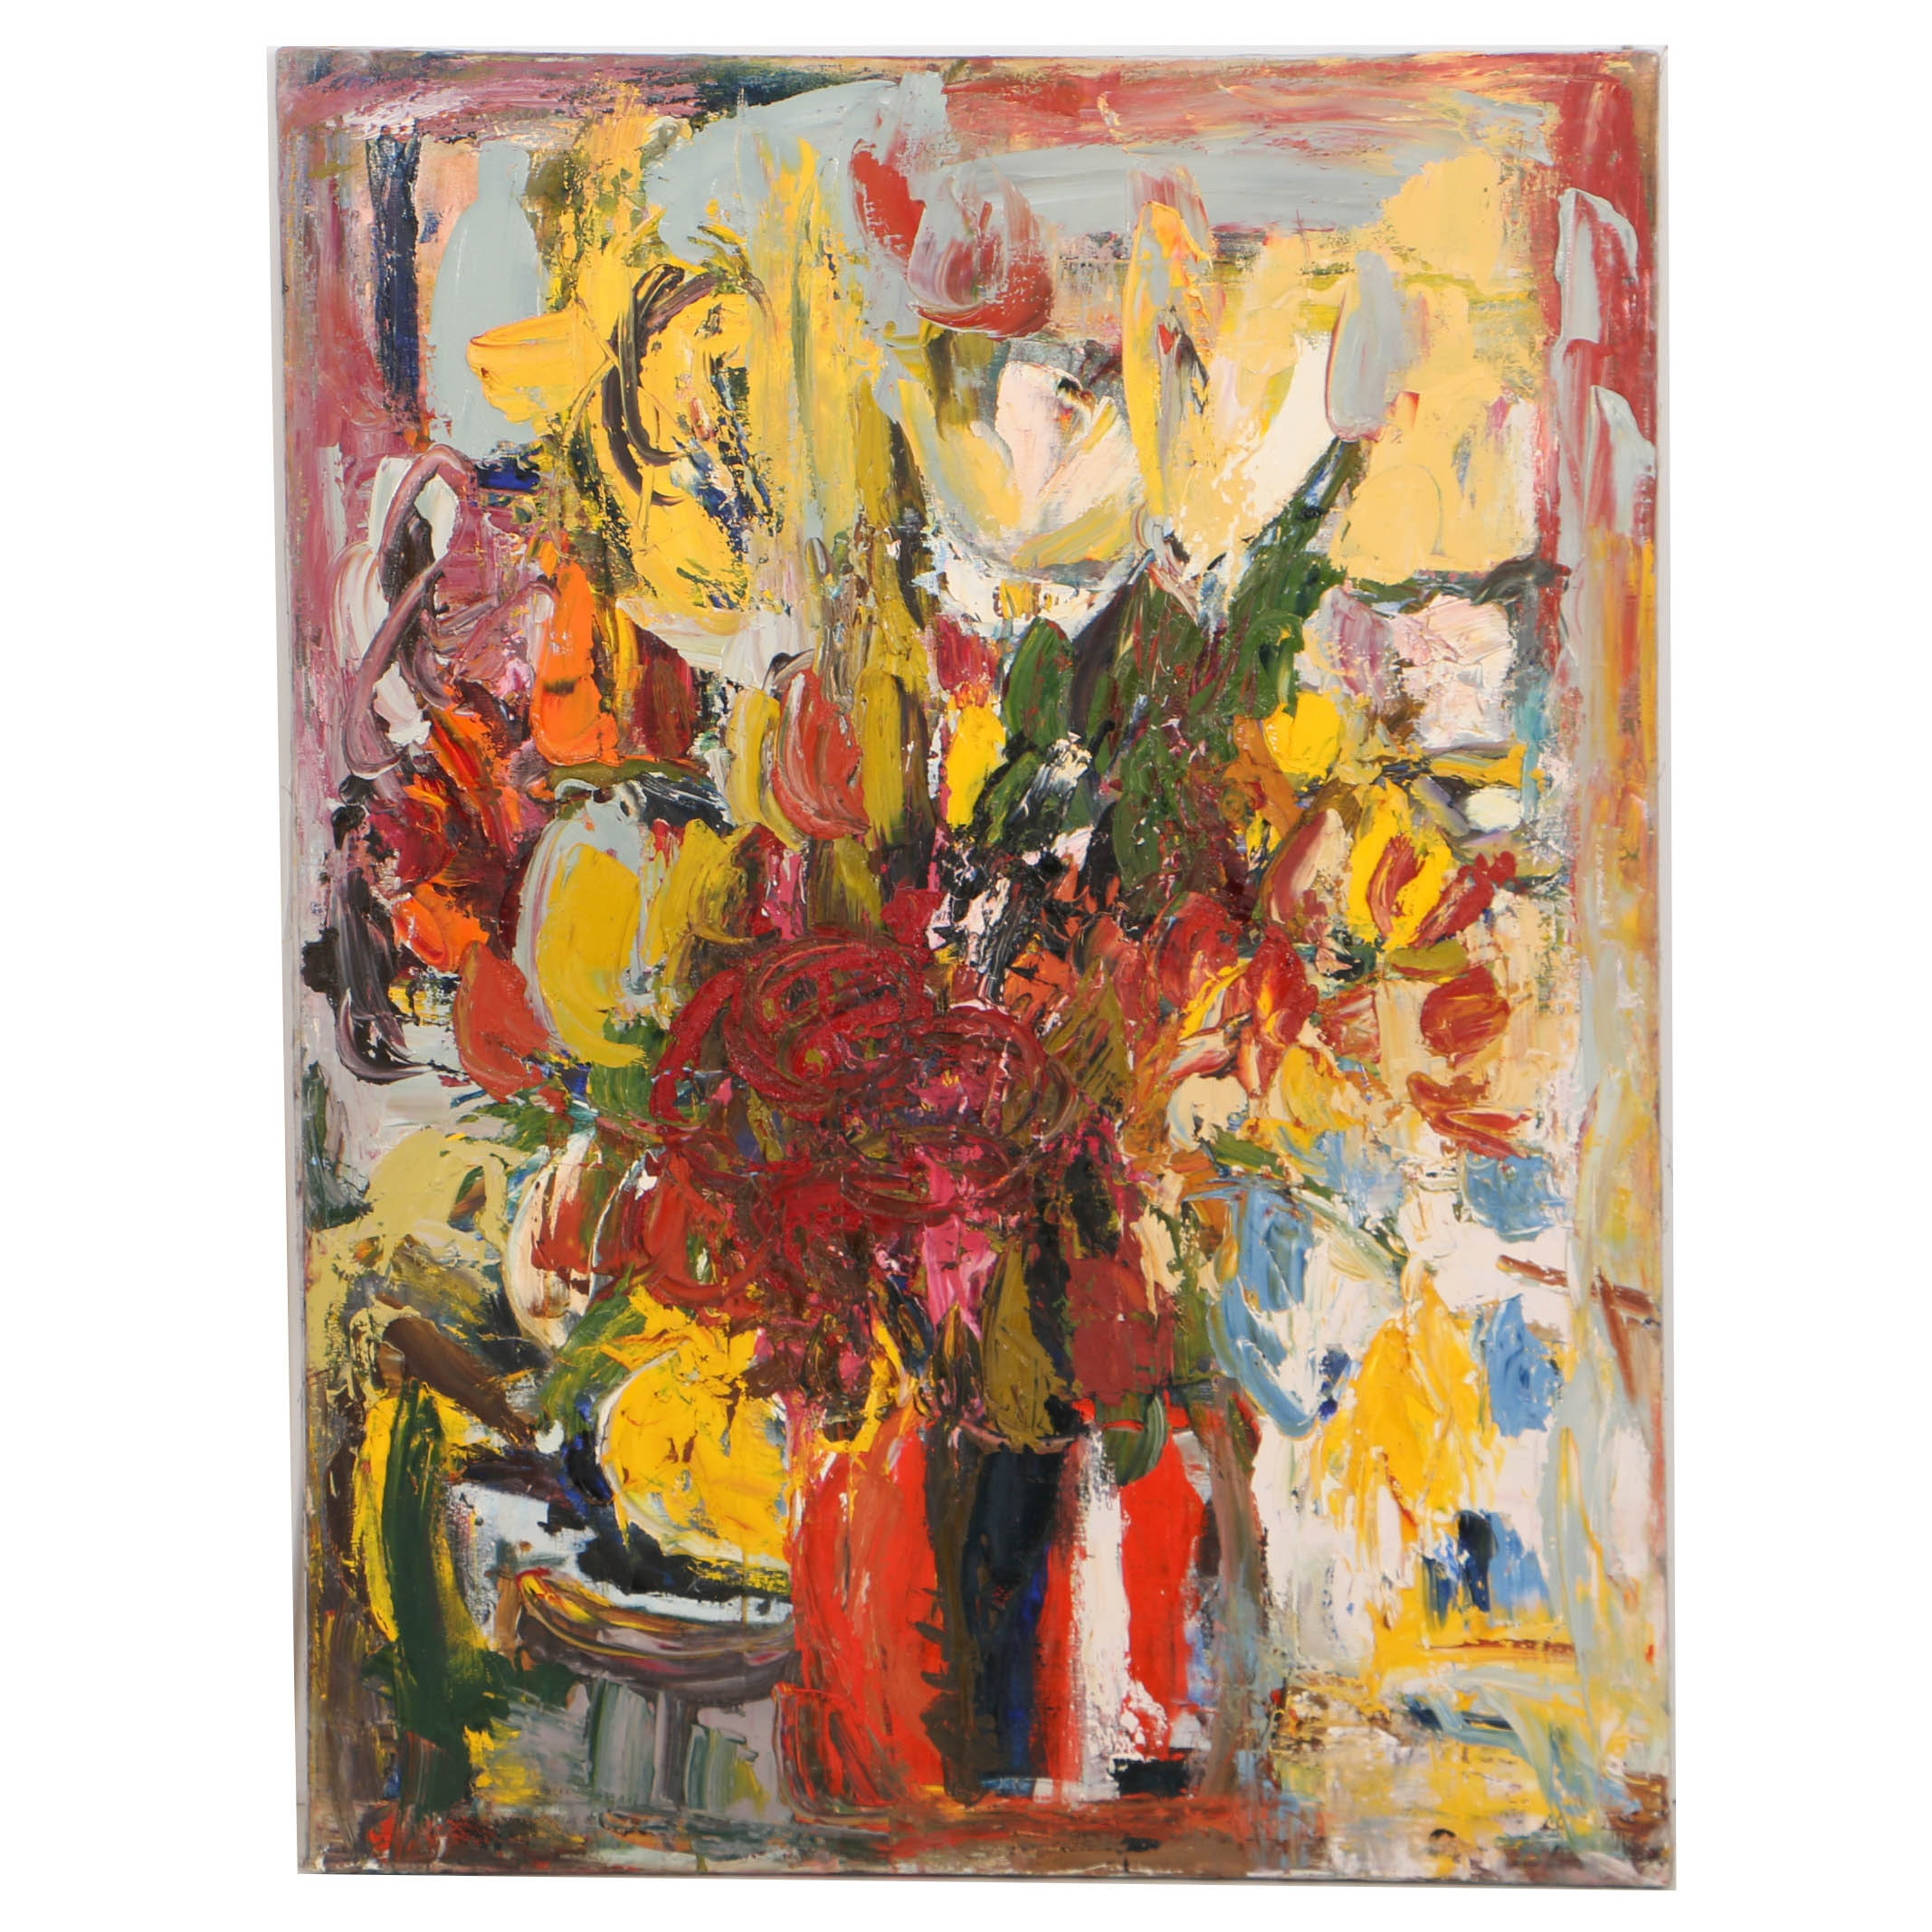 Louis Papp Oil Painting on Canvas Abstract Floral Still Life